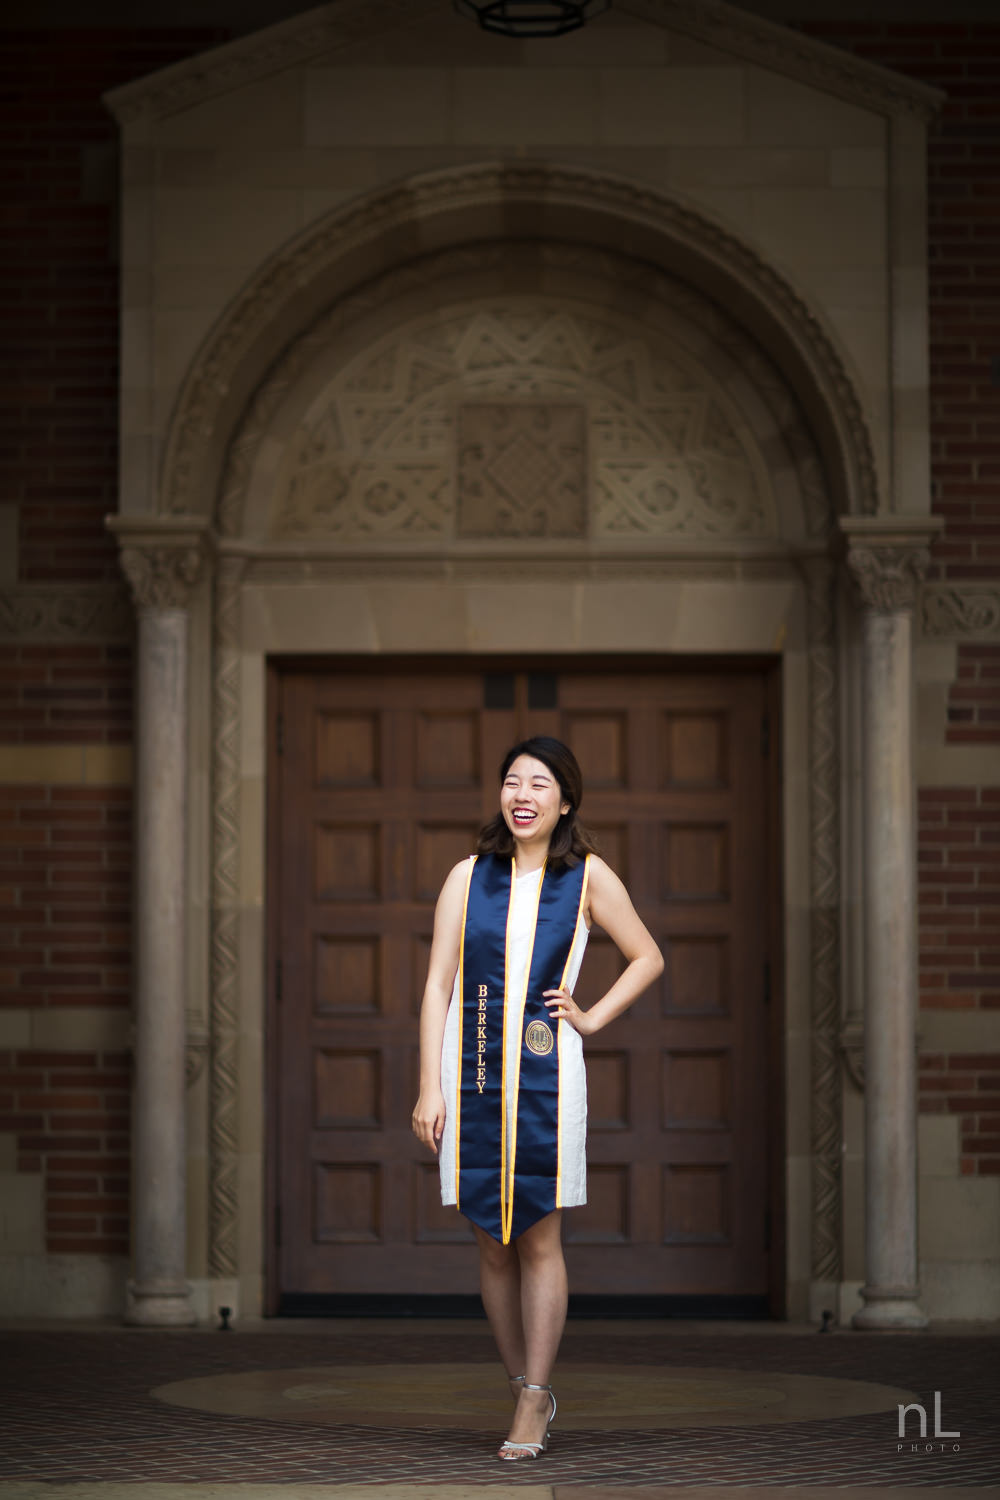 los-angeles-ucla-senior-graduation-portraits-0478.jpg